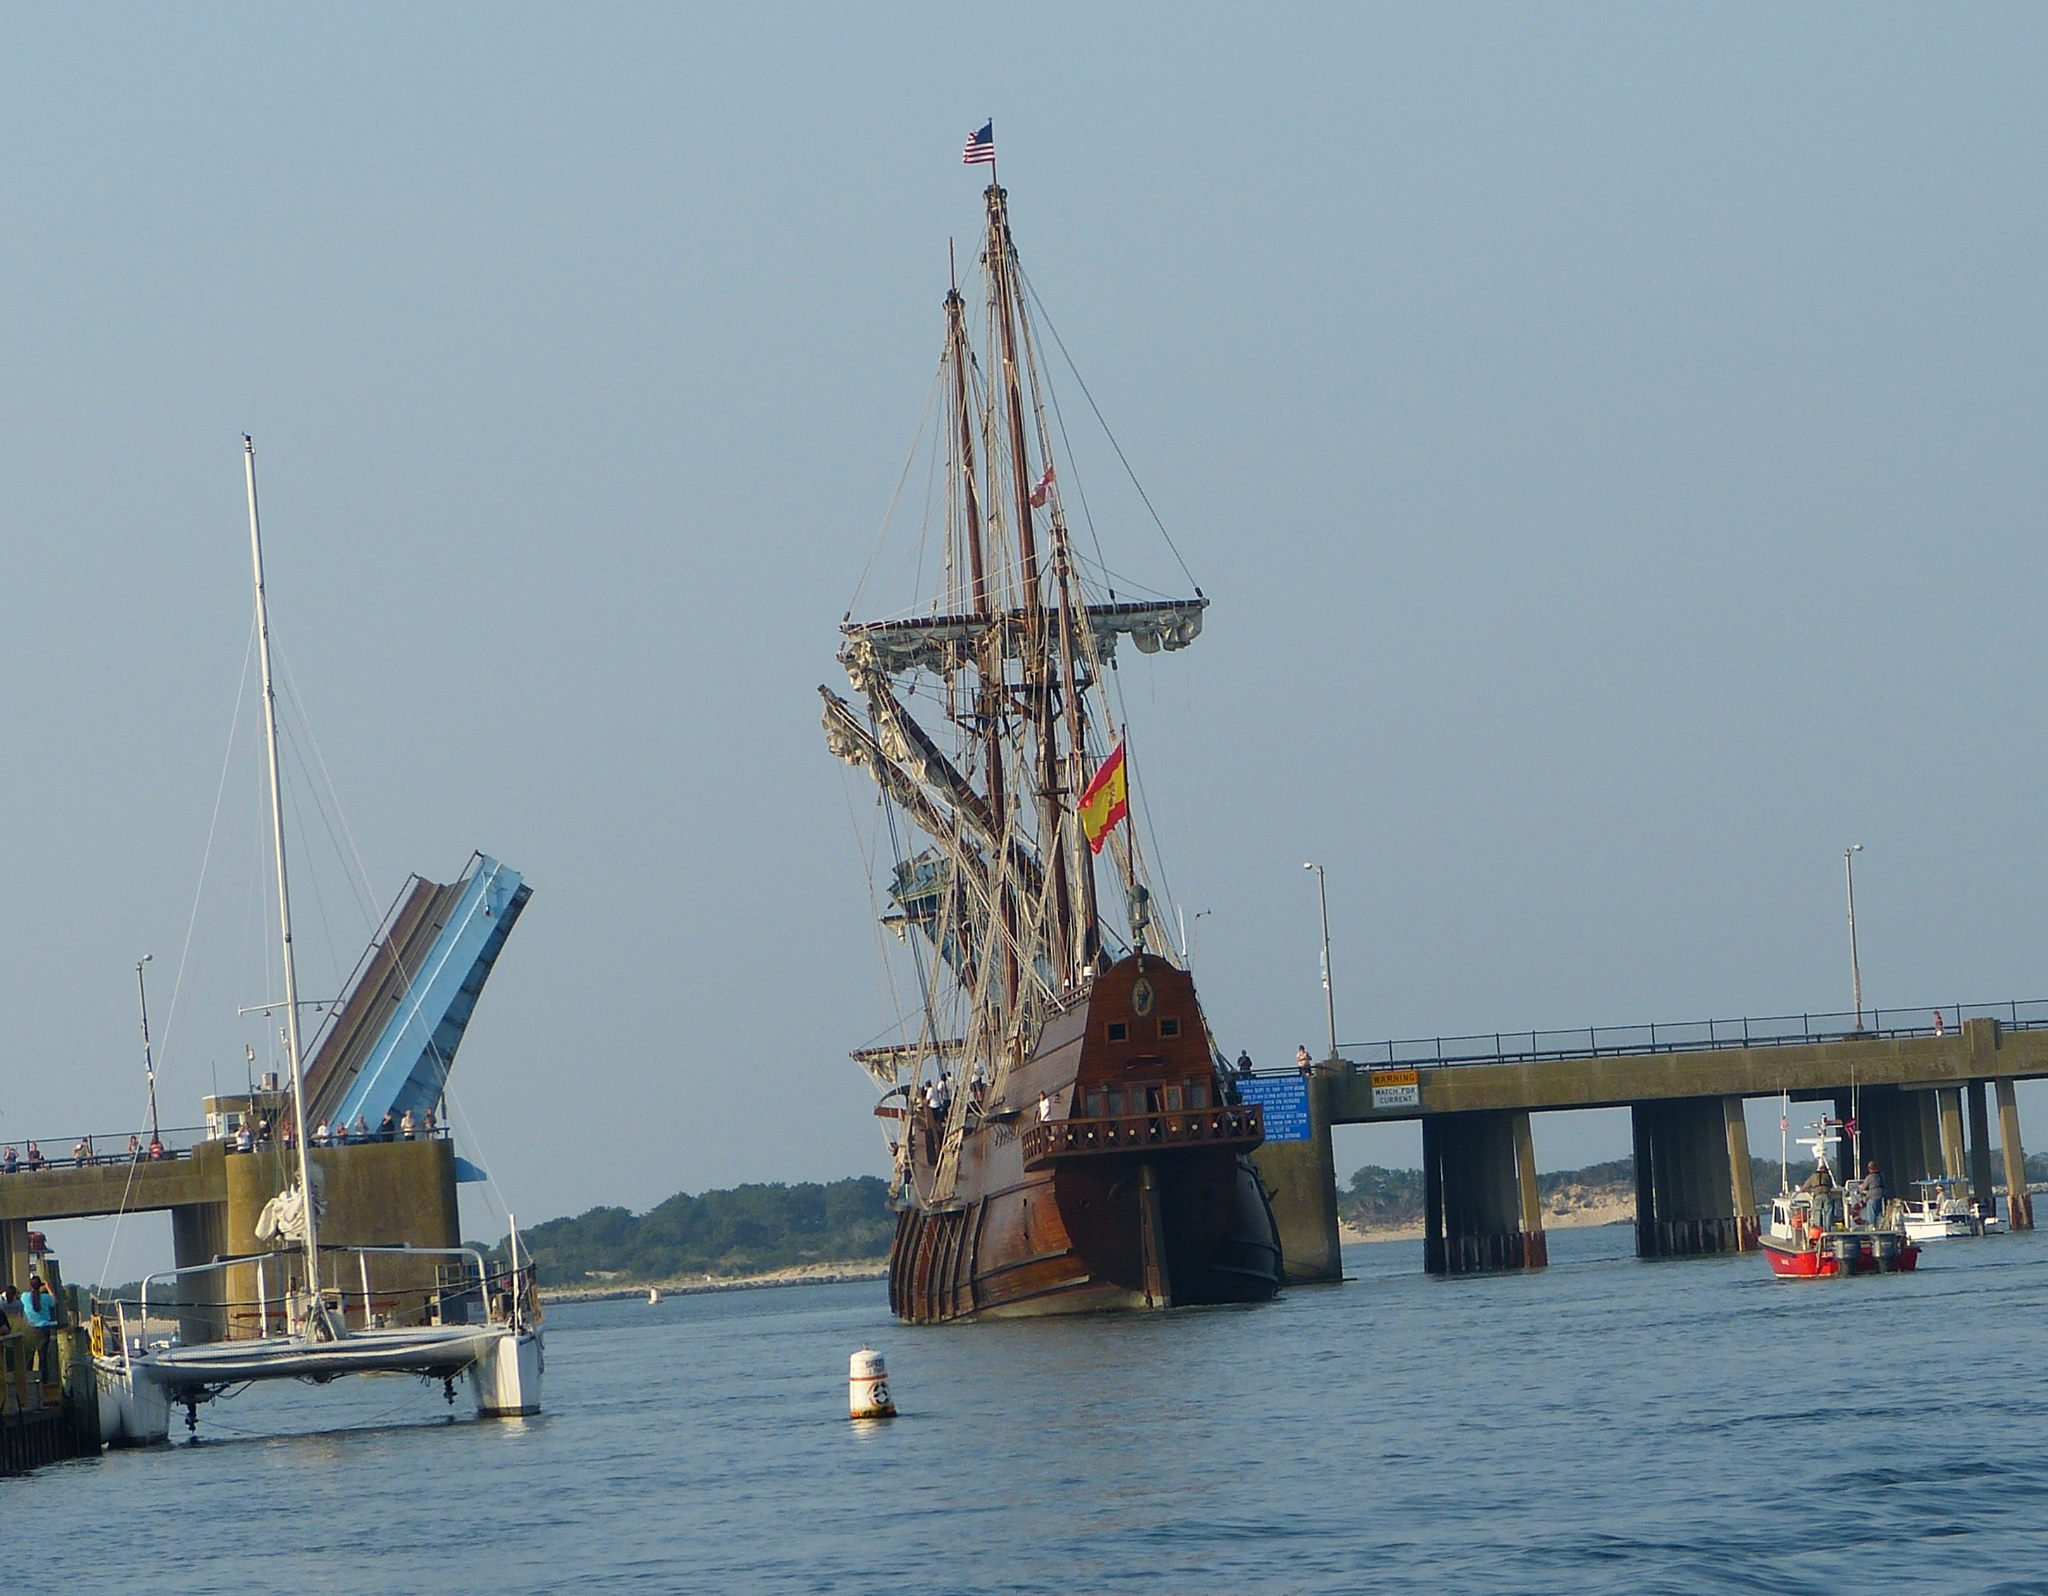 The El Galeon is pictured leaving Ocean City on Sept. 3. Photo by Mike Adkins